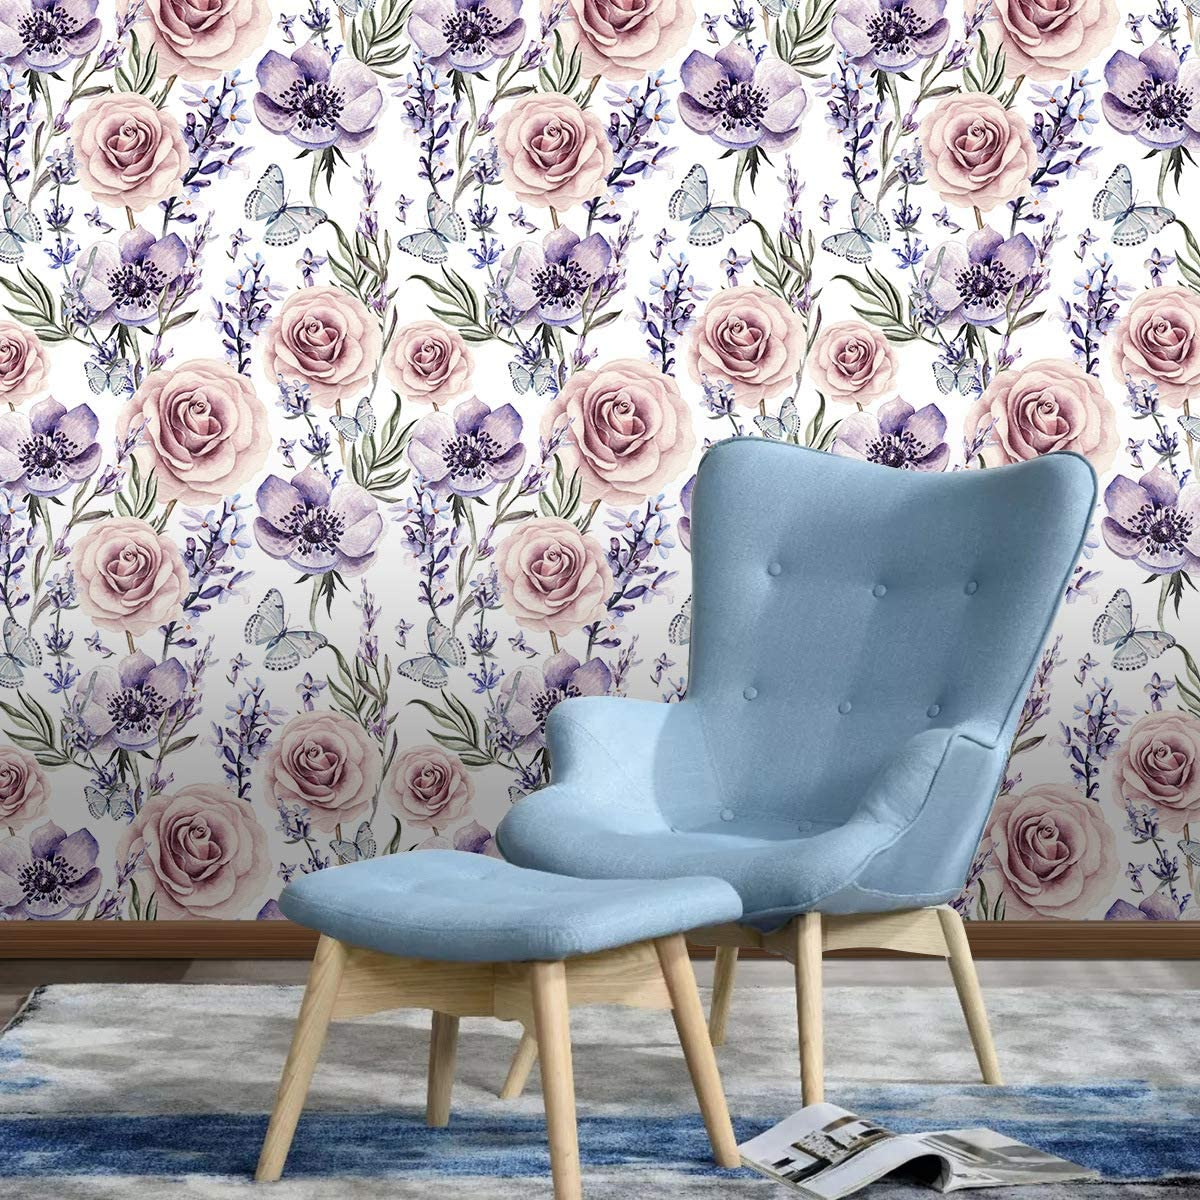 Wallpaper Belzesso Modern Floral Rose Peel And Stick Wallpaper Self Adhesive Removable Wall Decor For Home Bedroom Walls Doors Stairs Cabinets 3871 78 7in Length X 17 7in Width Tools Home Improvement Dccbjagdalpur Com